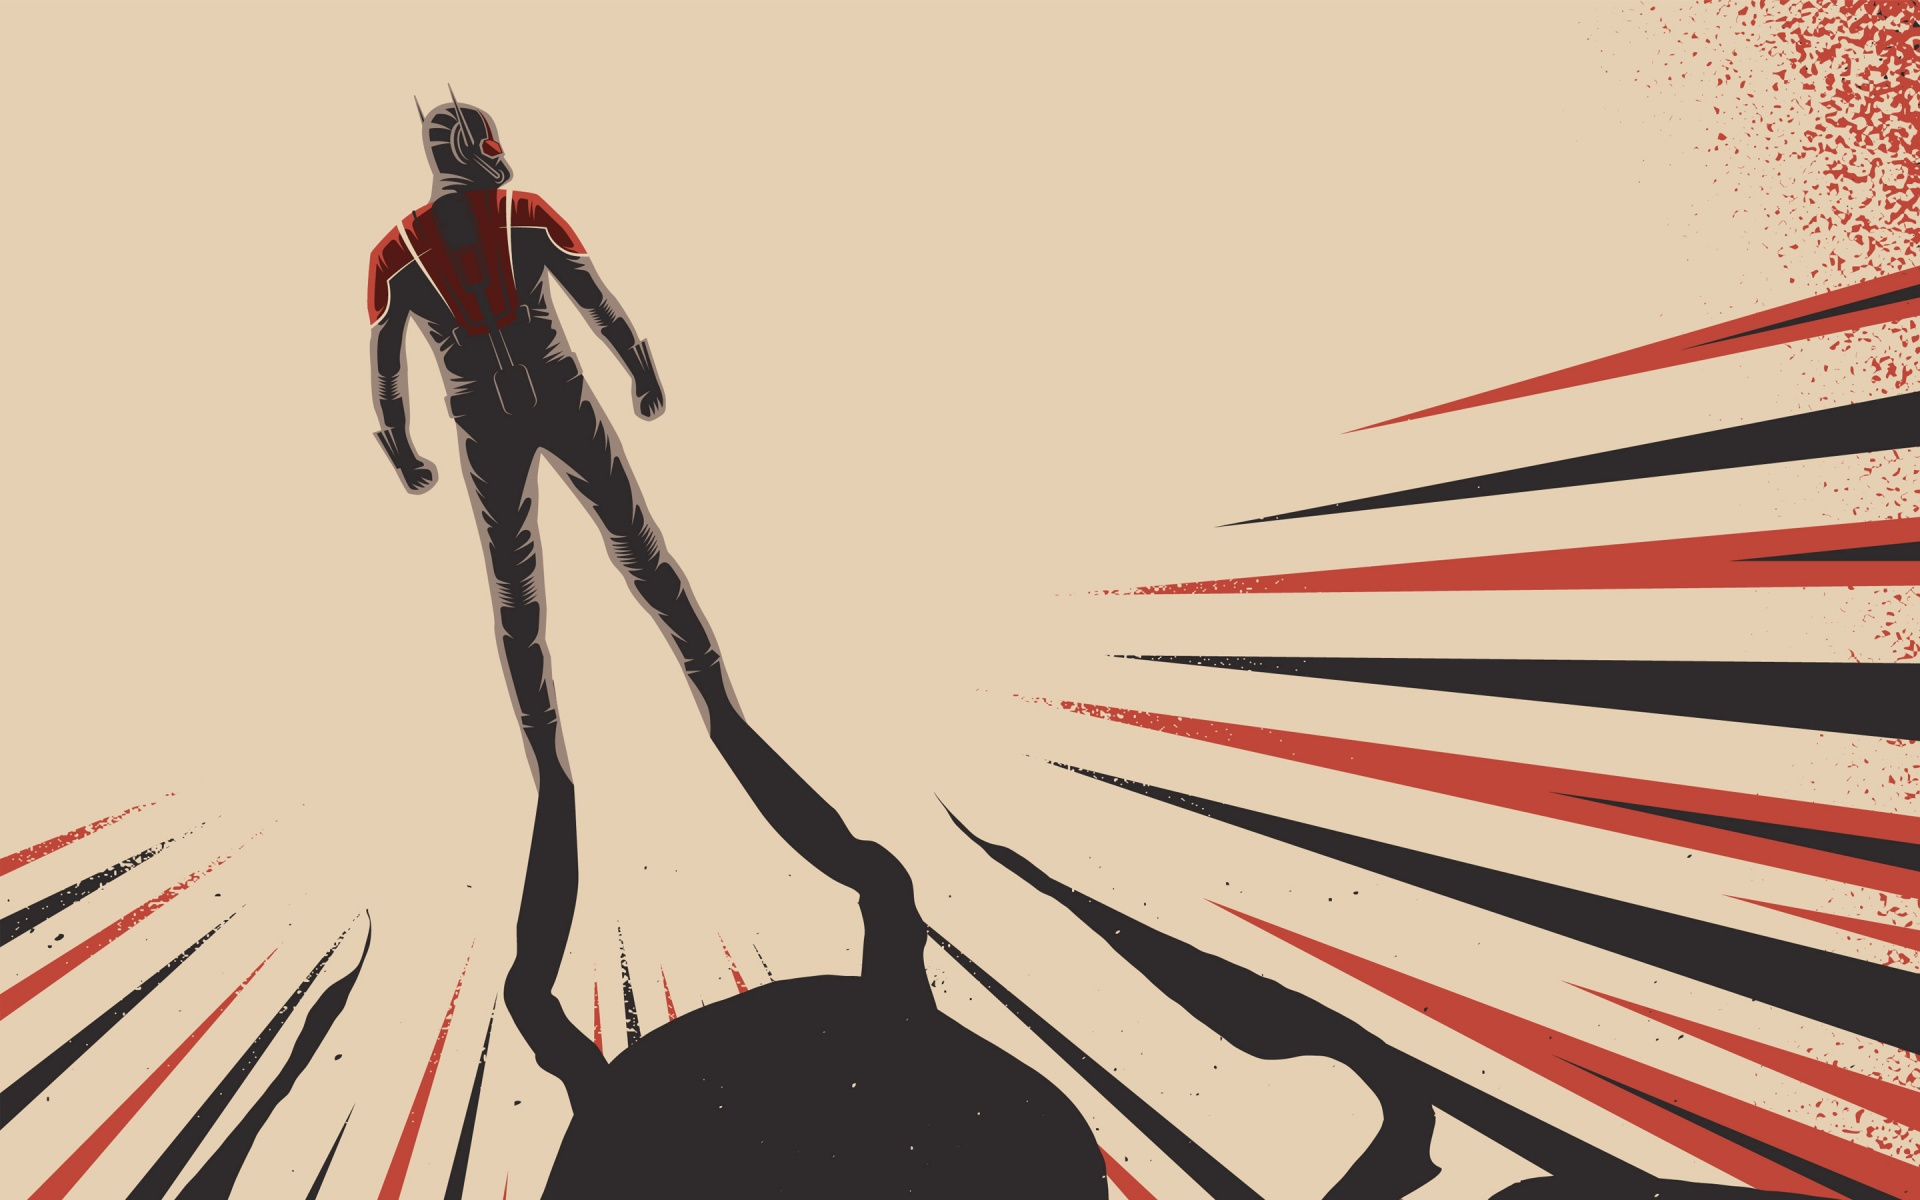 Ant Man Vintage Wallpapers HD Wallpapers 1920x1200